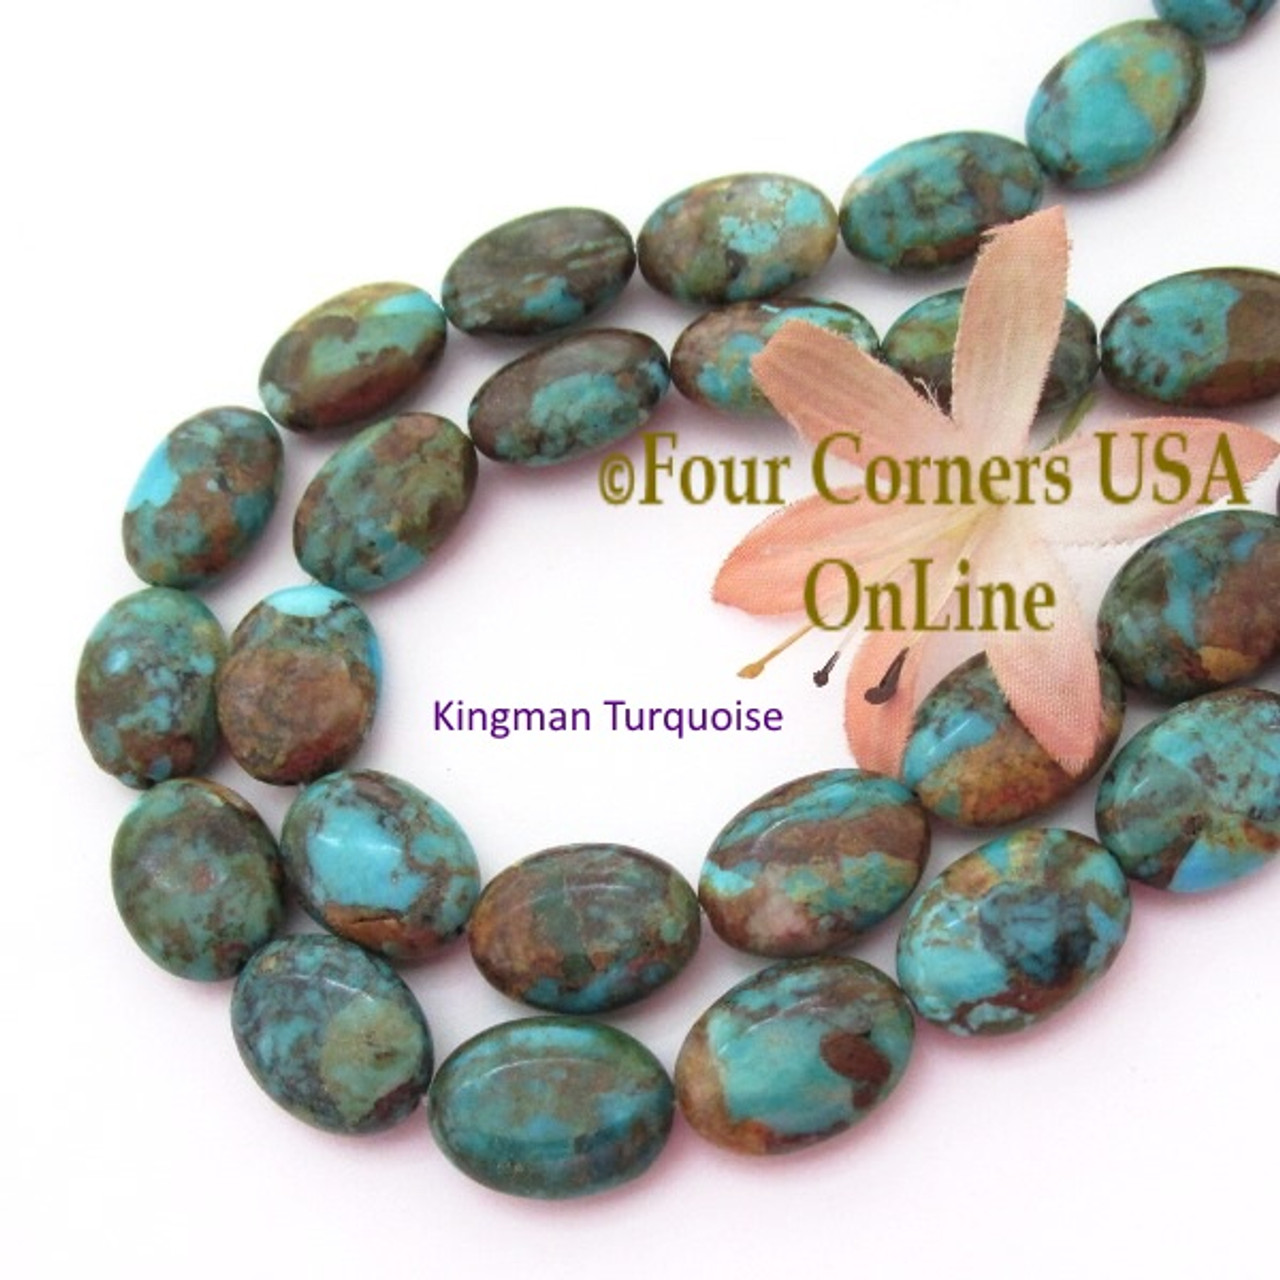 pd thomas store the en online shanghai usa quot in from bead karma collection sabo men beads us